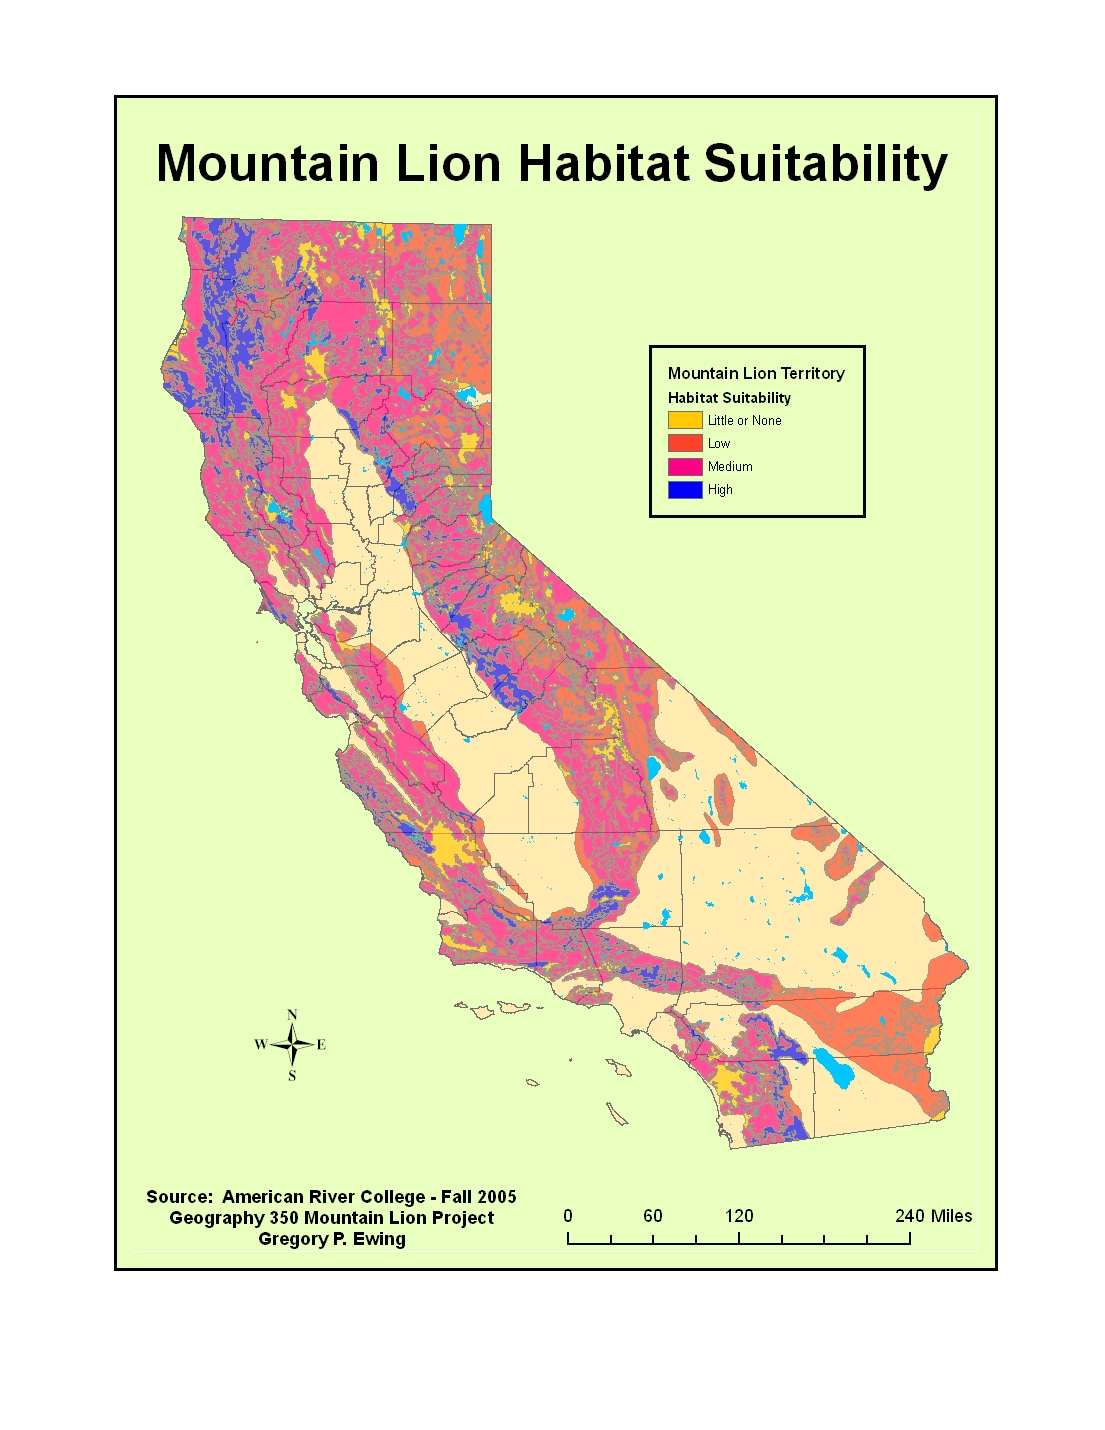 G350_Ewing_Project - Mountain Lions In California Map